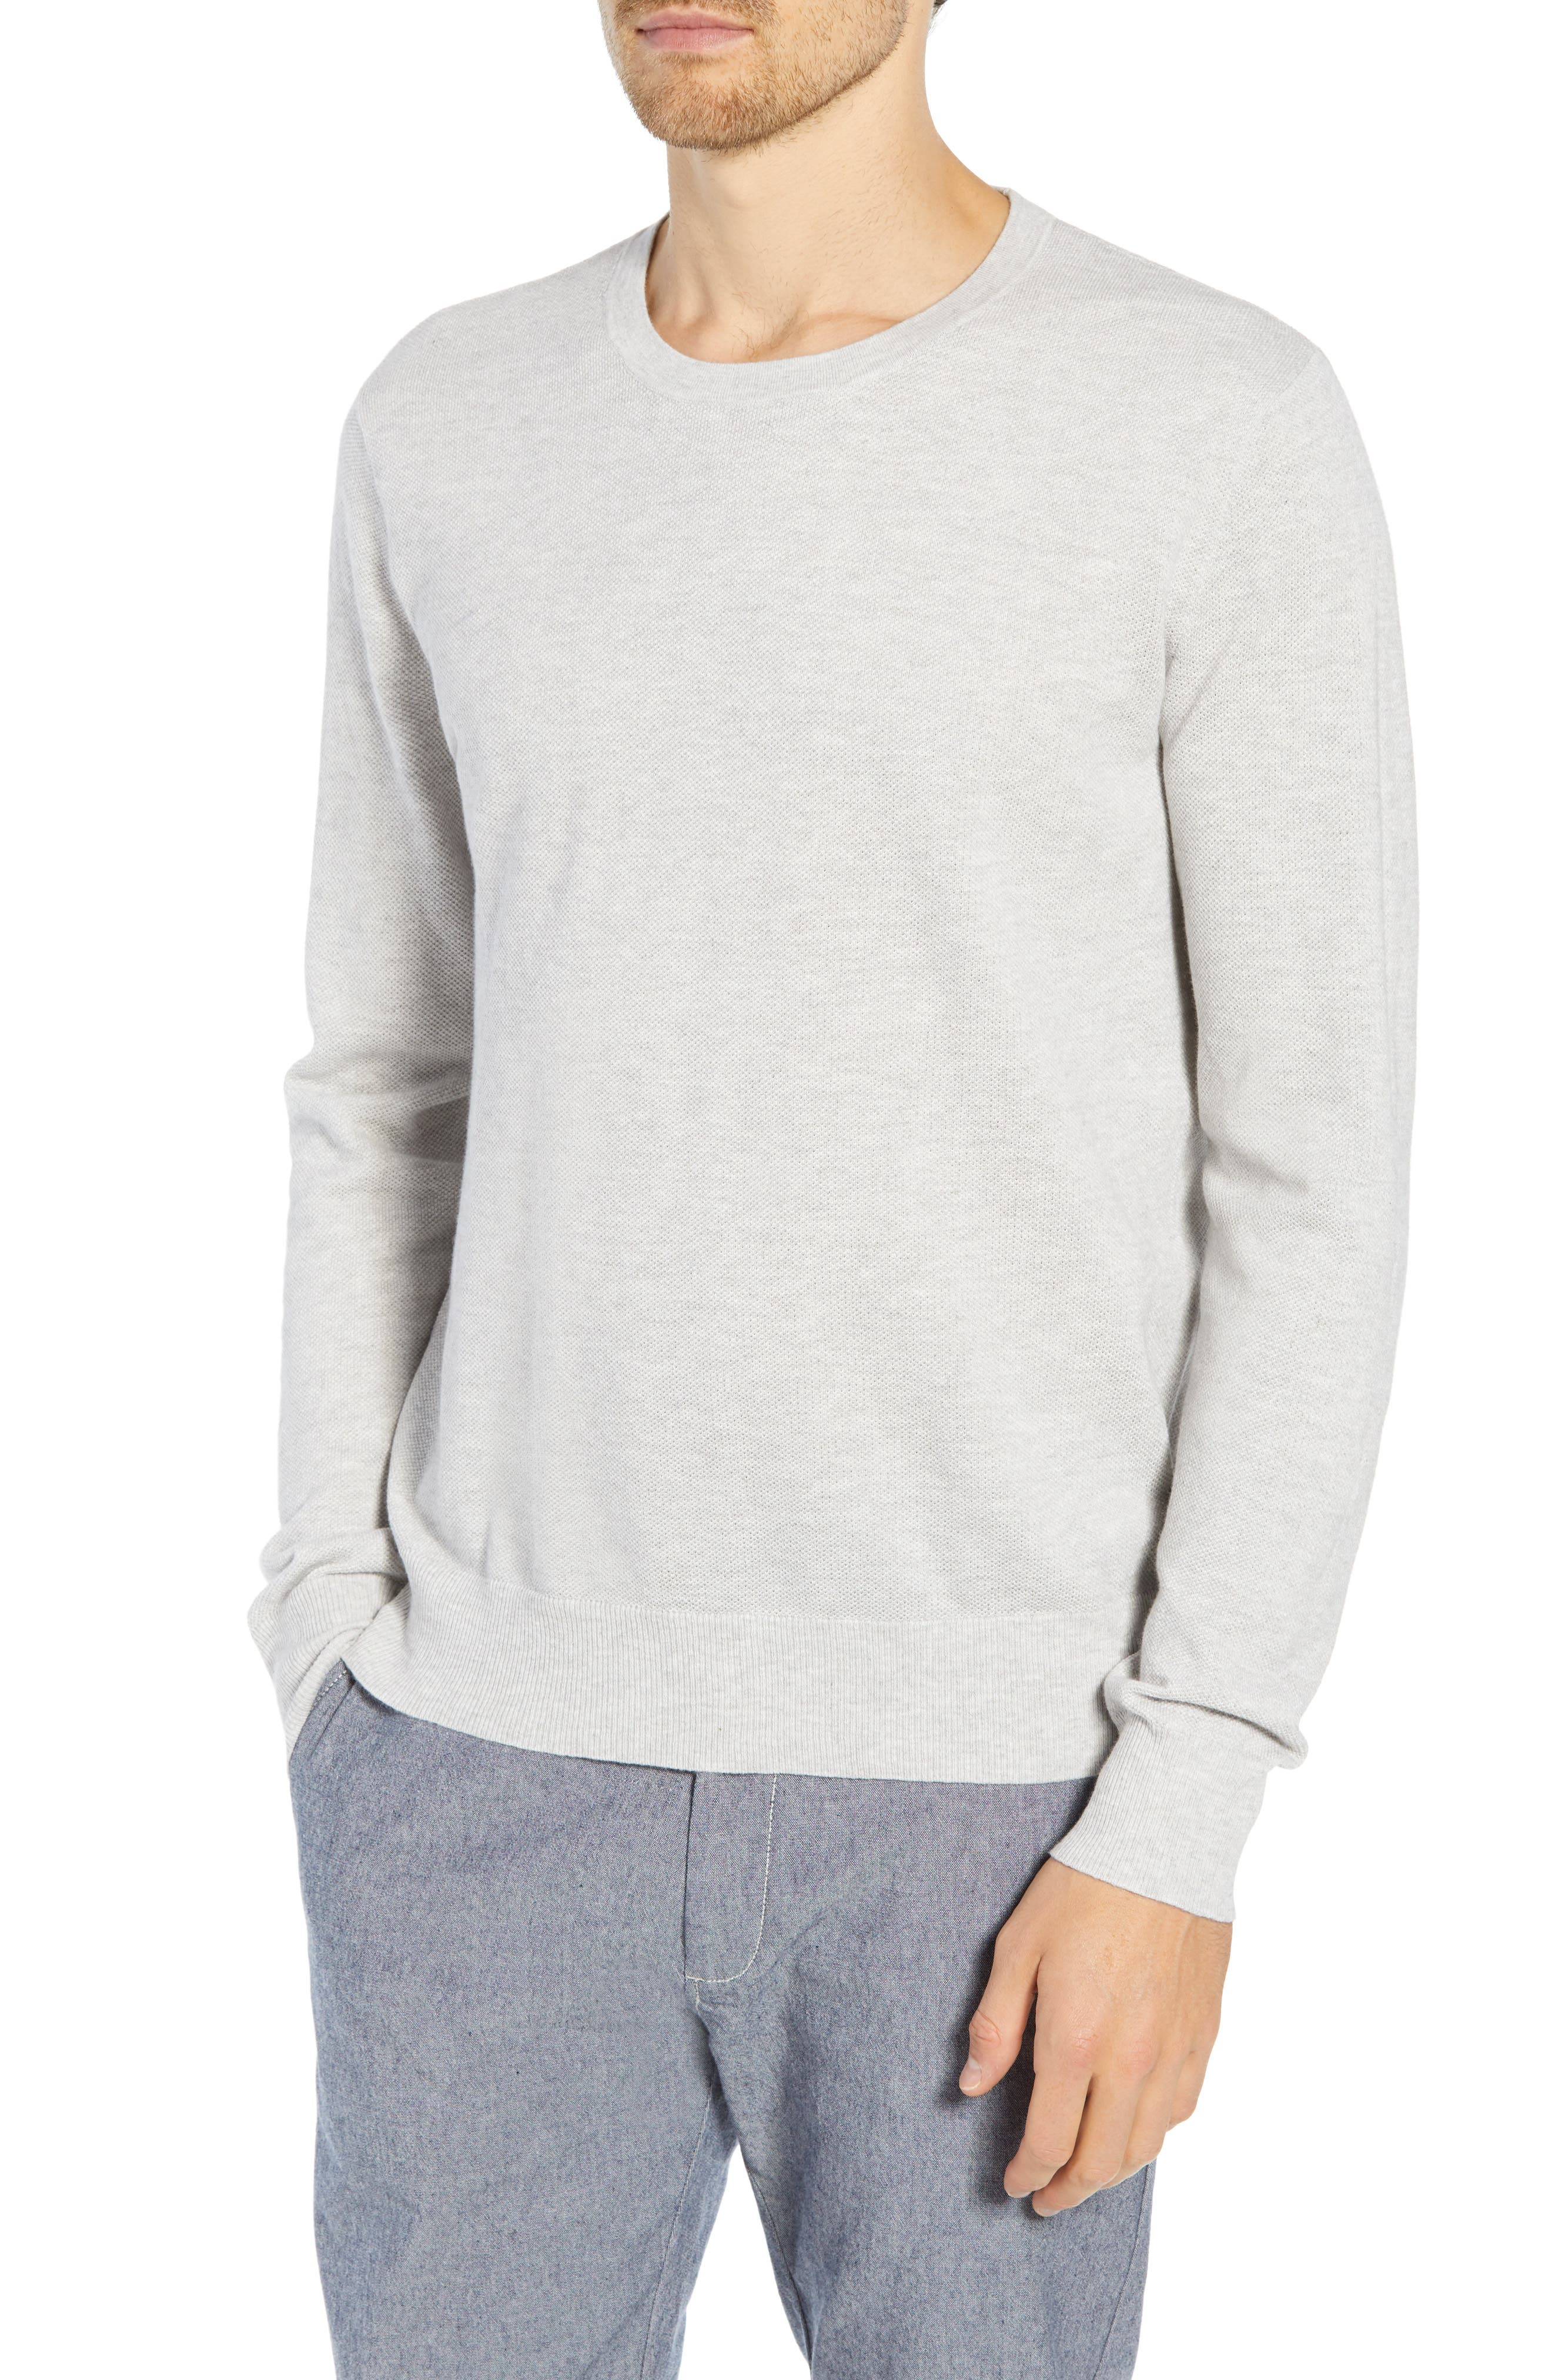 Cotton & Cashmere Piqué Crewneck Sweater,                             Main thumbnail 1, color,                             HEATHER SILVER